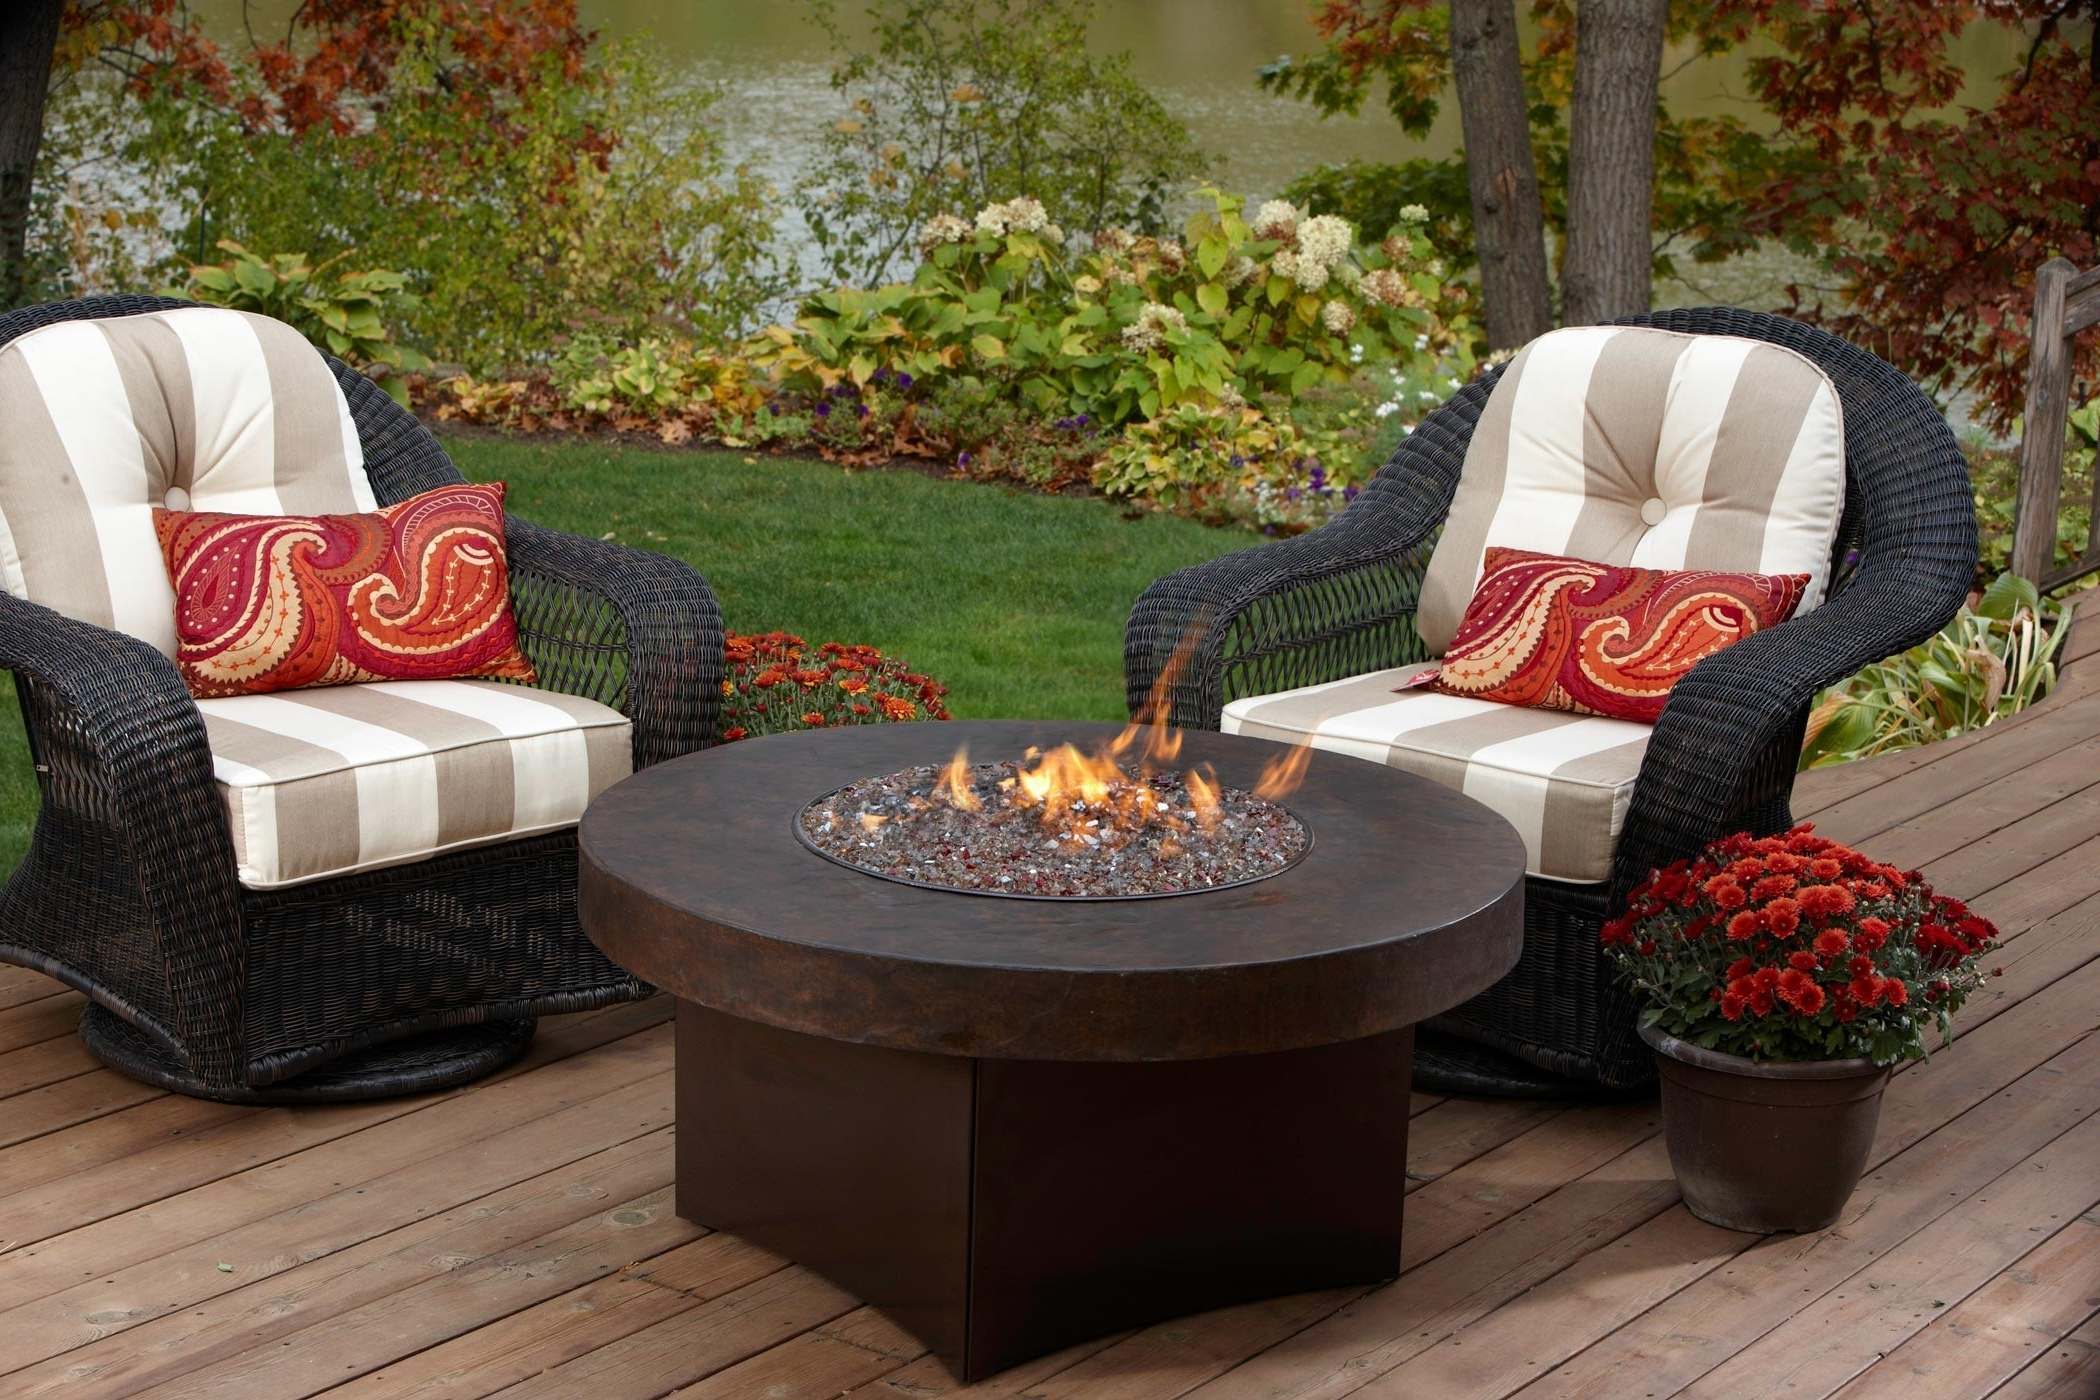 Fundamentals Patio Table With Gas Fire Pit Give The Warmth In Inside Famous Patio Conversation Sets With Propane Fire Pit (View 14 of 15)